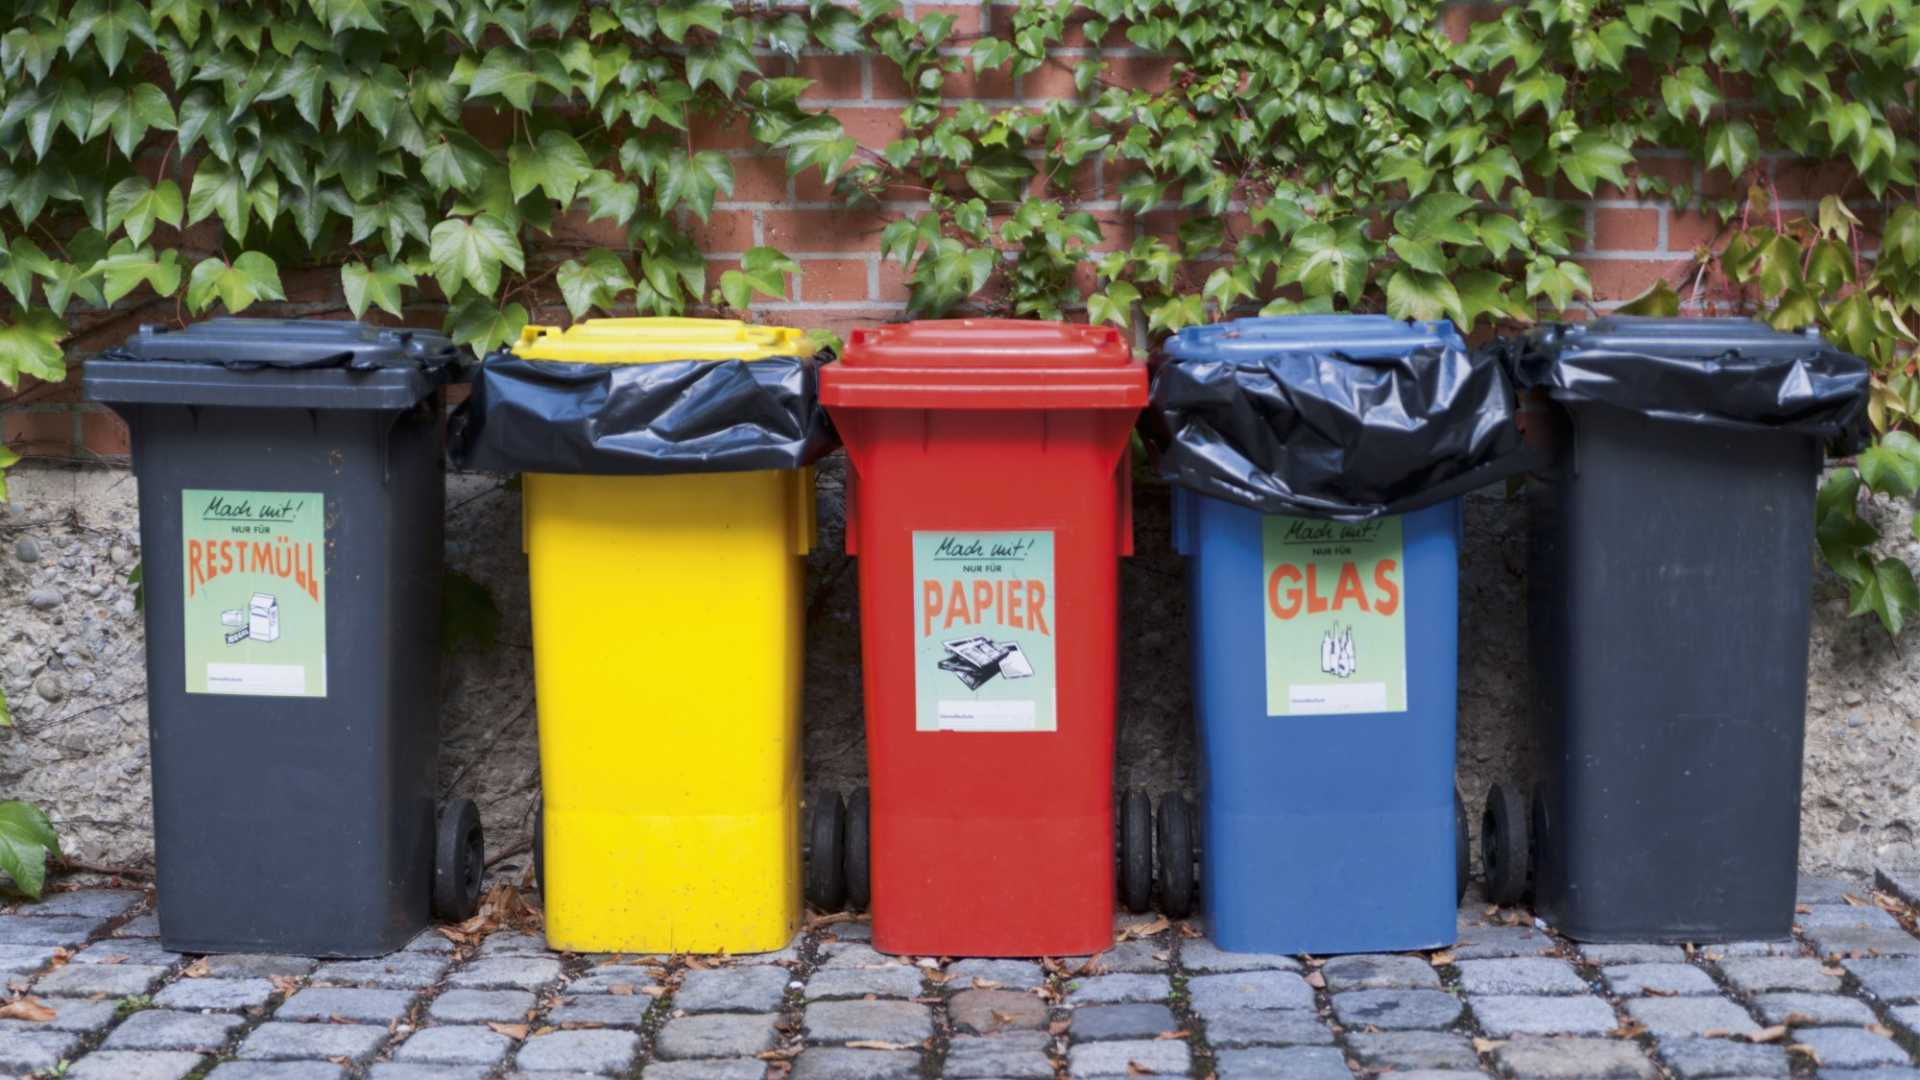 Germany Figured Out the Single Best Way to Get People to Recycle